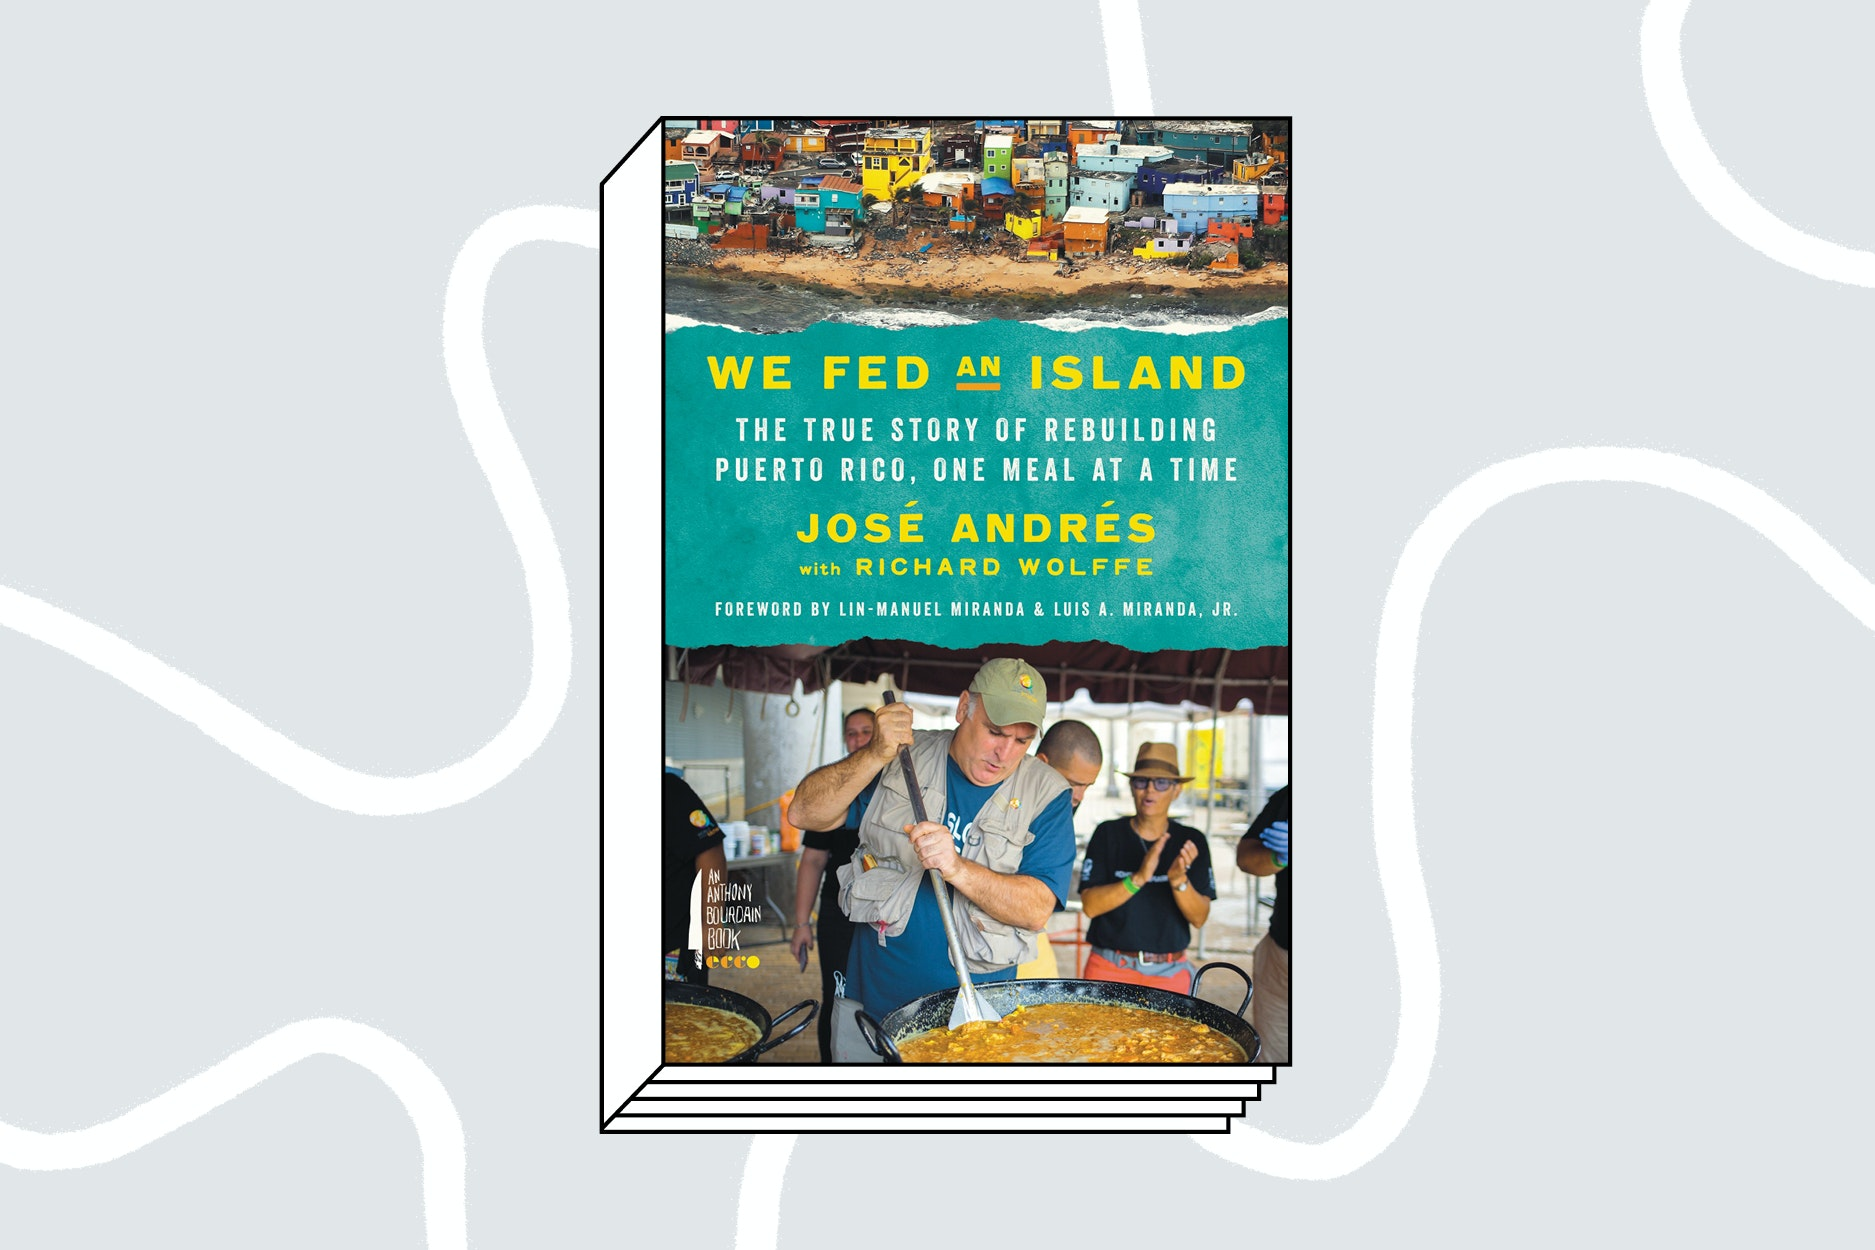 We Fed an Island: The True Story of Rebuilding Puerto Rico (HarperCollins, 2018)